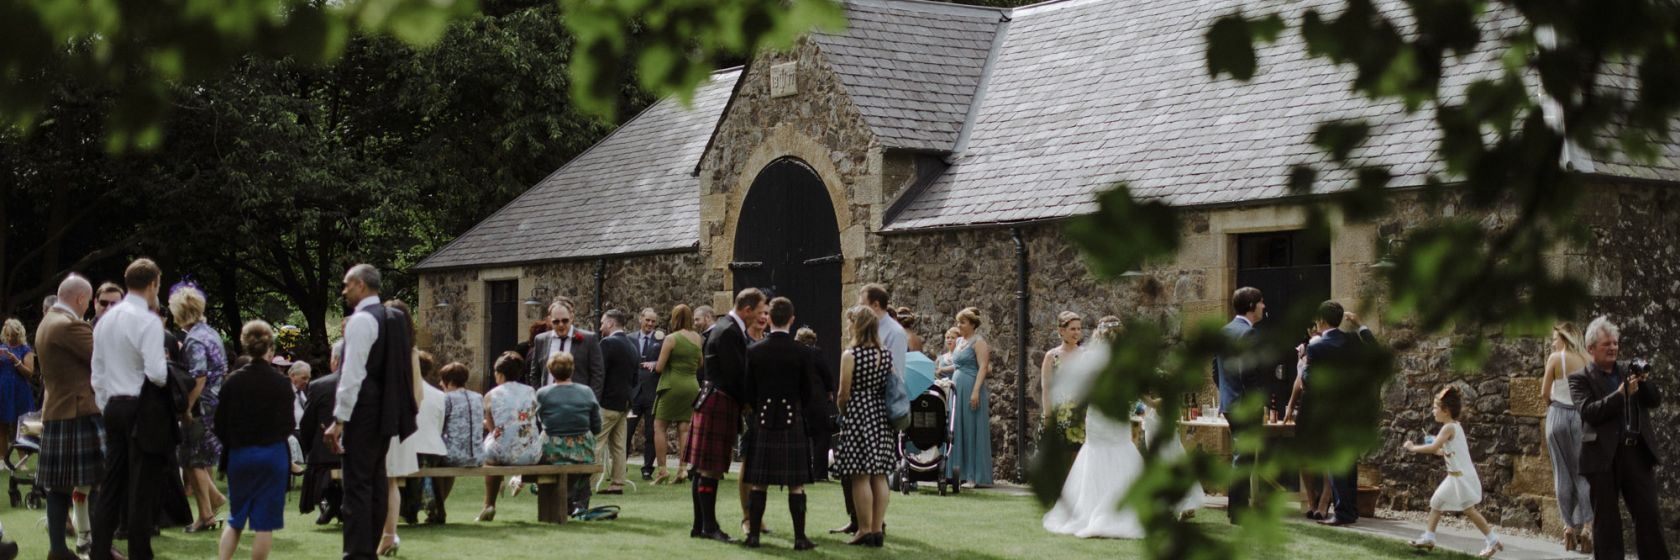 Welcome to the Byre at Inchyra | Rustic barn, Venues, Dundee